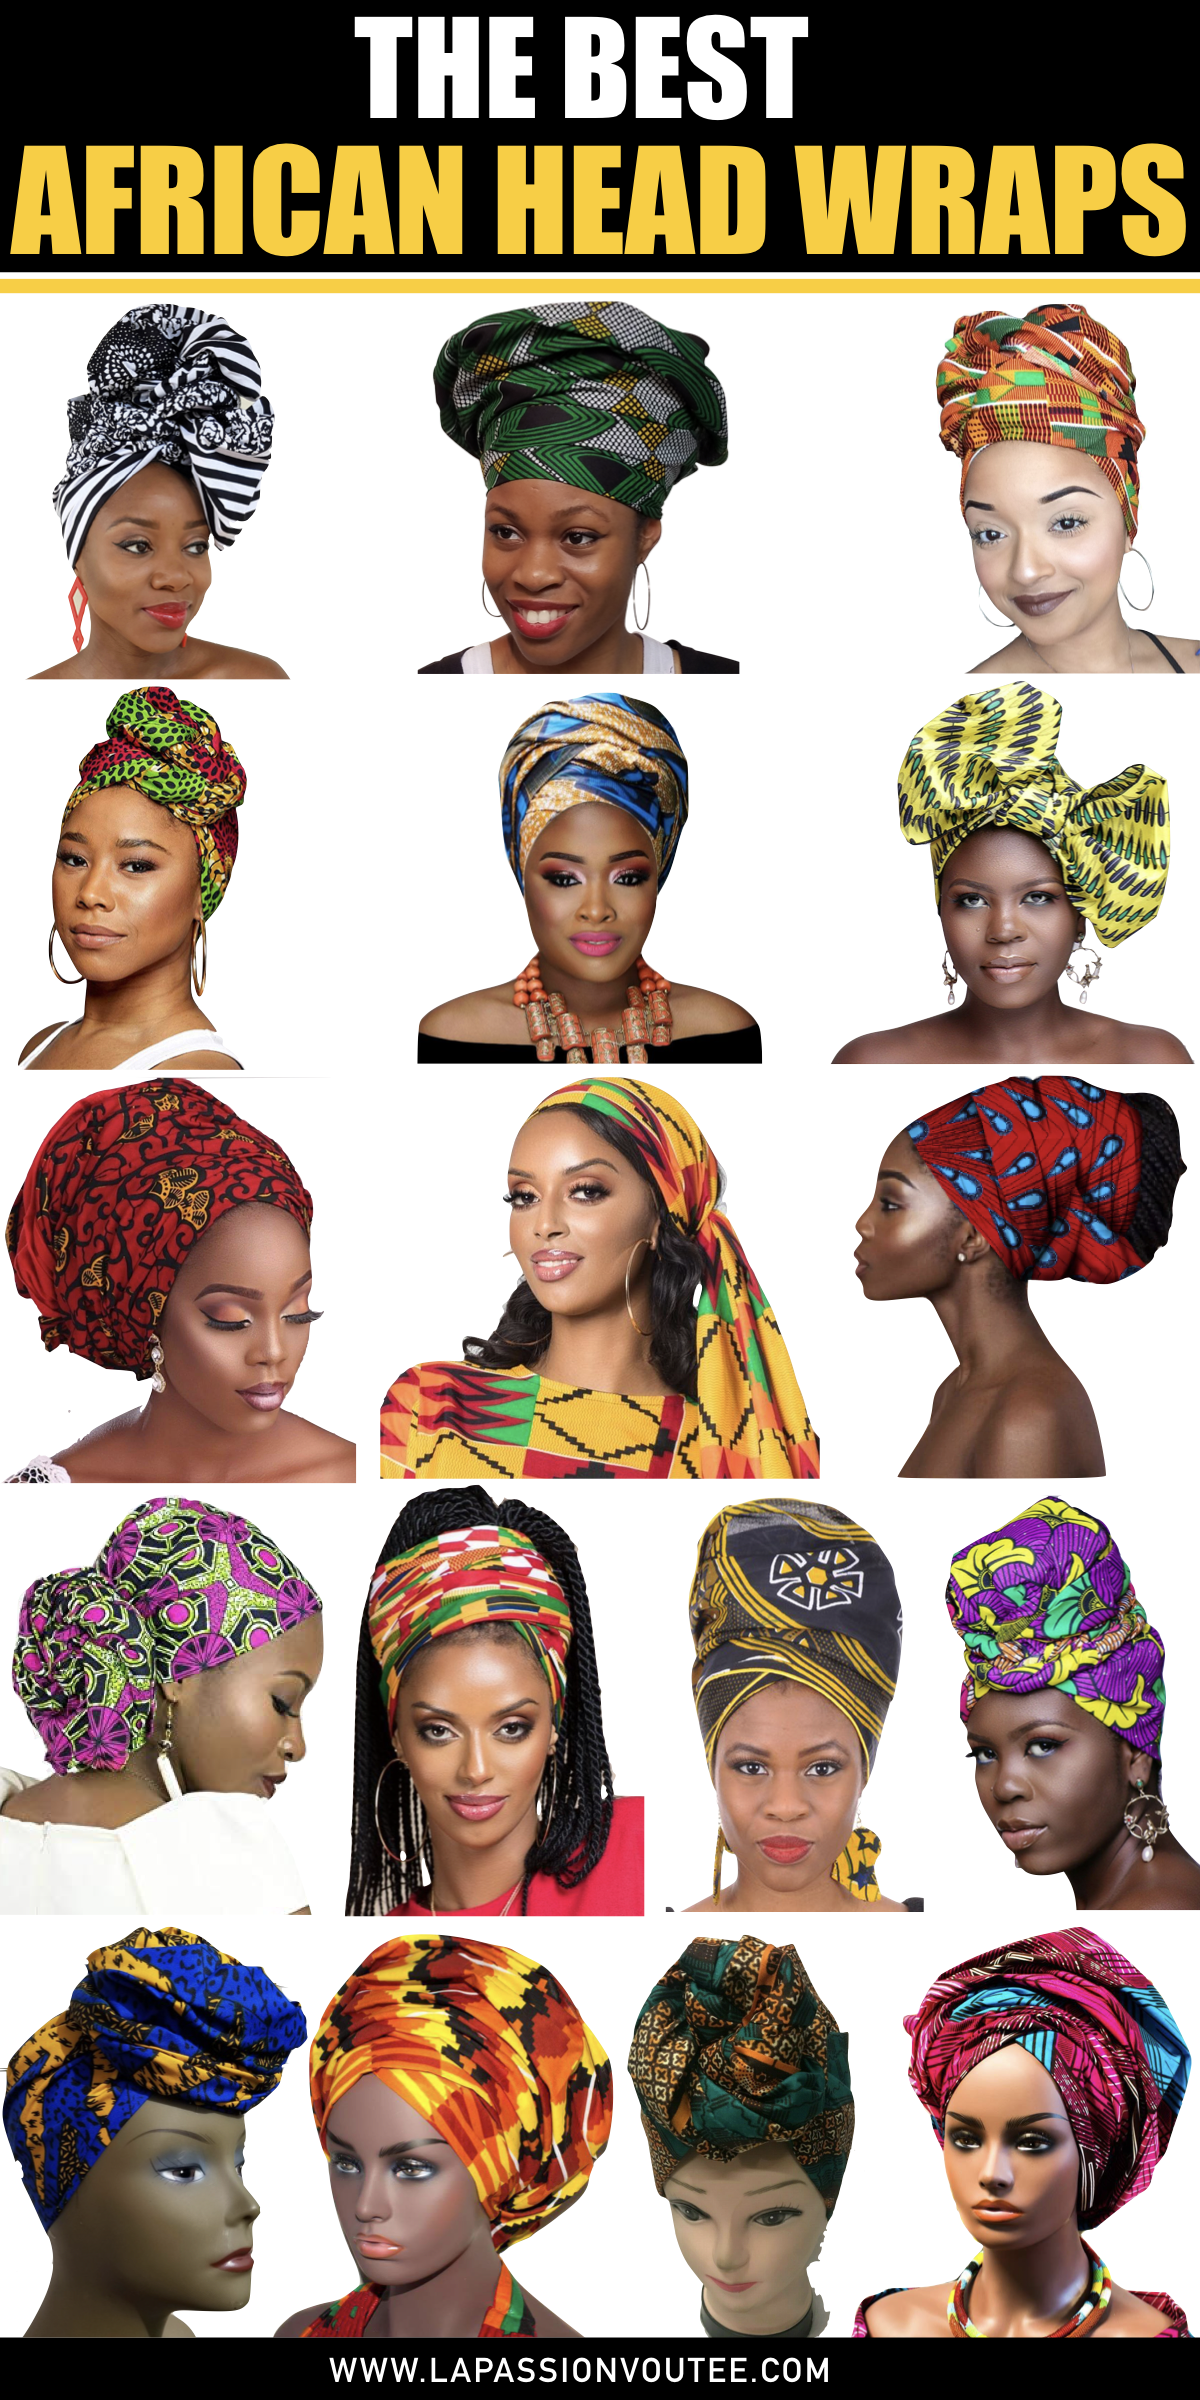 The best African head wraps